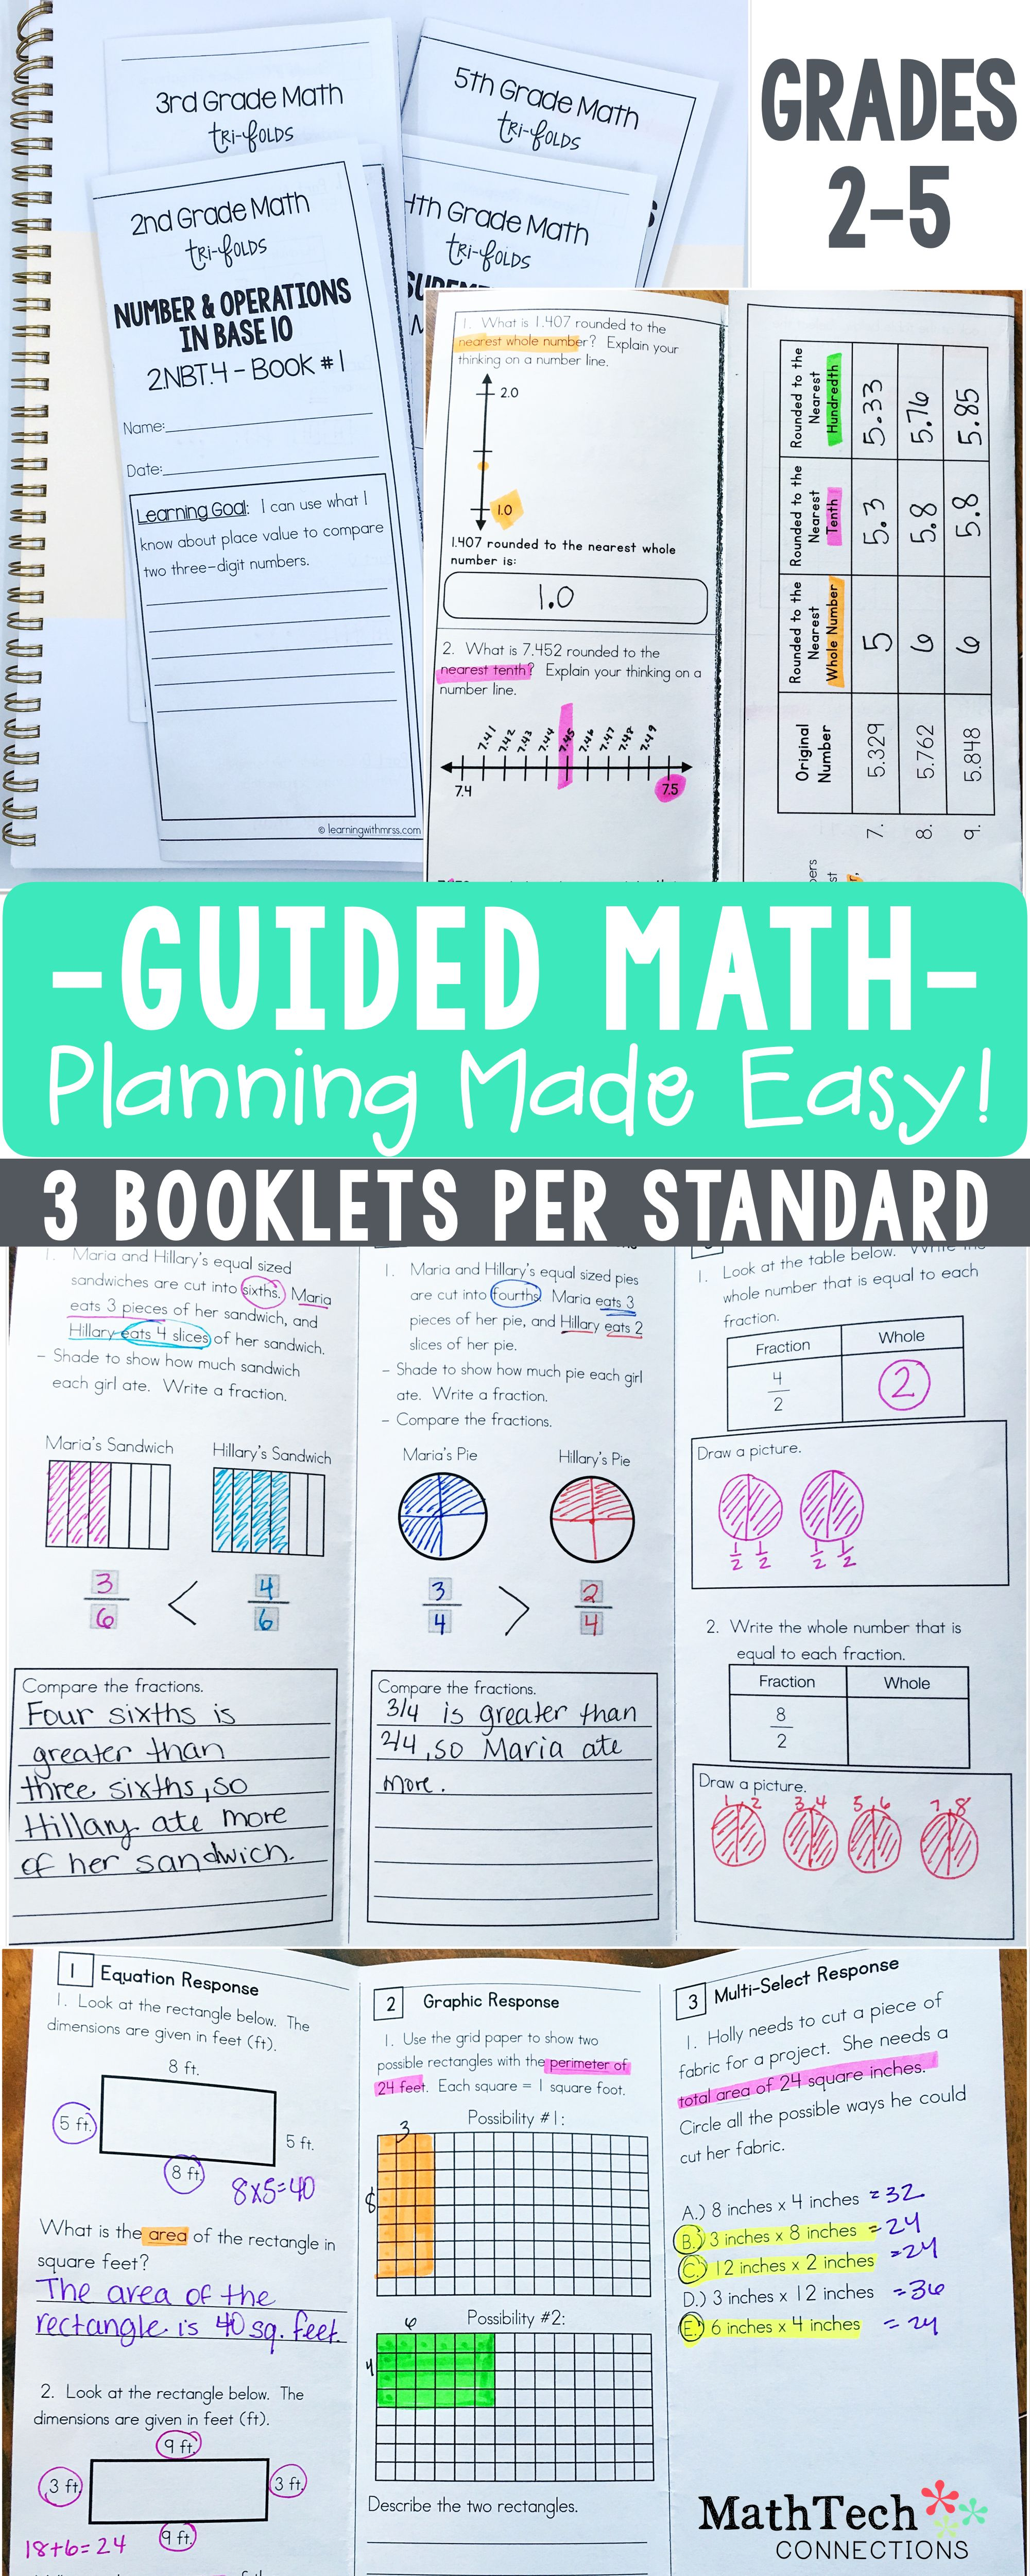 Plan Your Guided Math Small Groups With These Common Core Aligned Tri Folds 3 Booklets Per